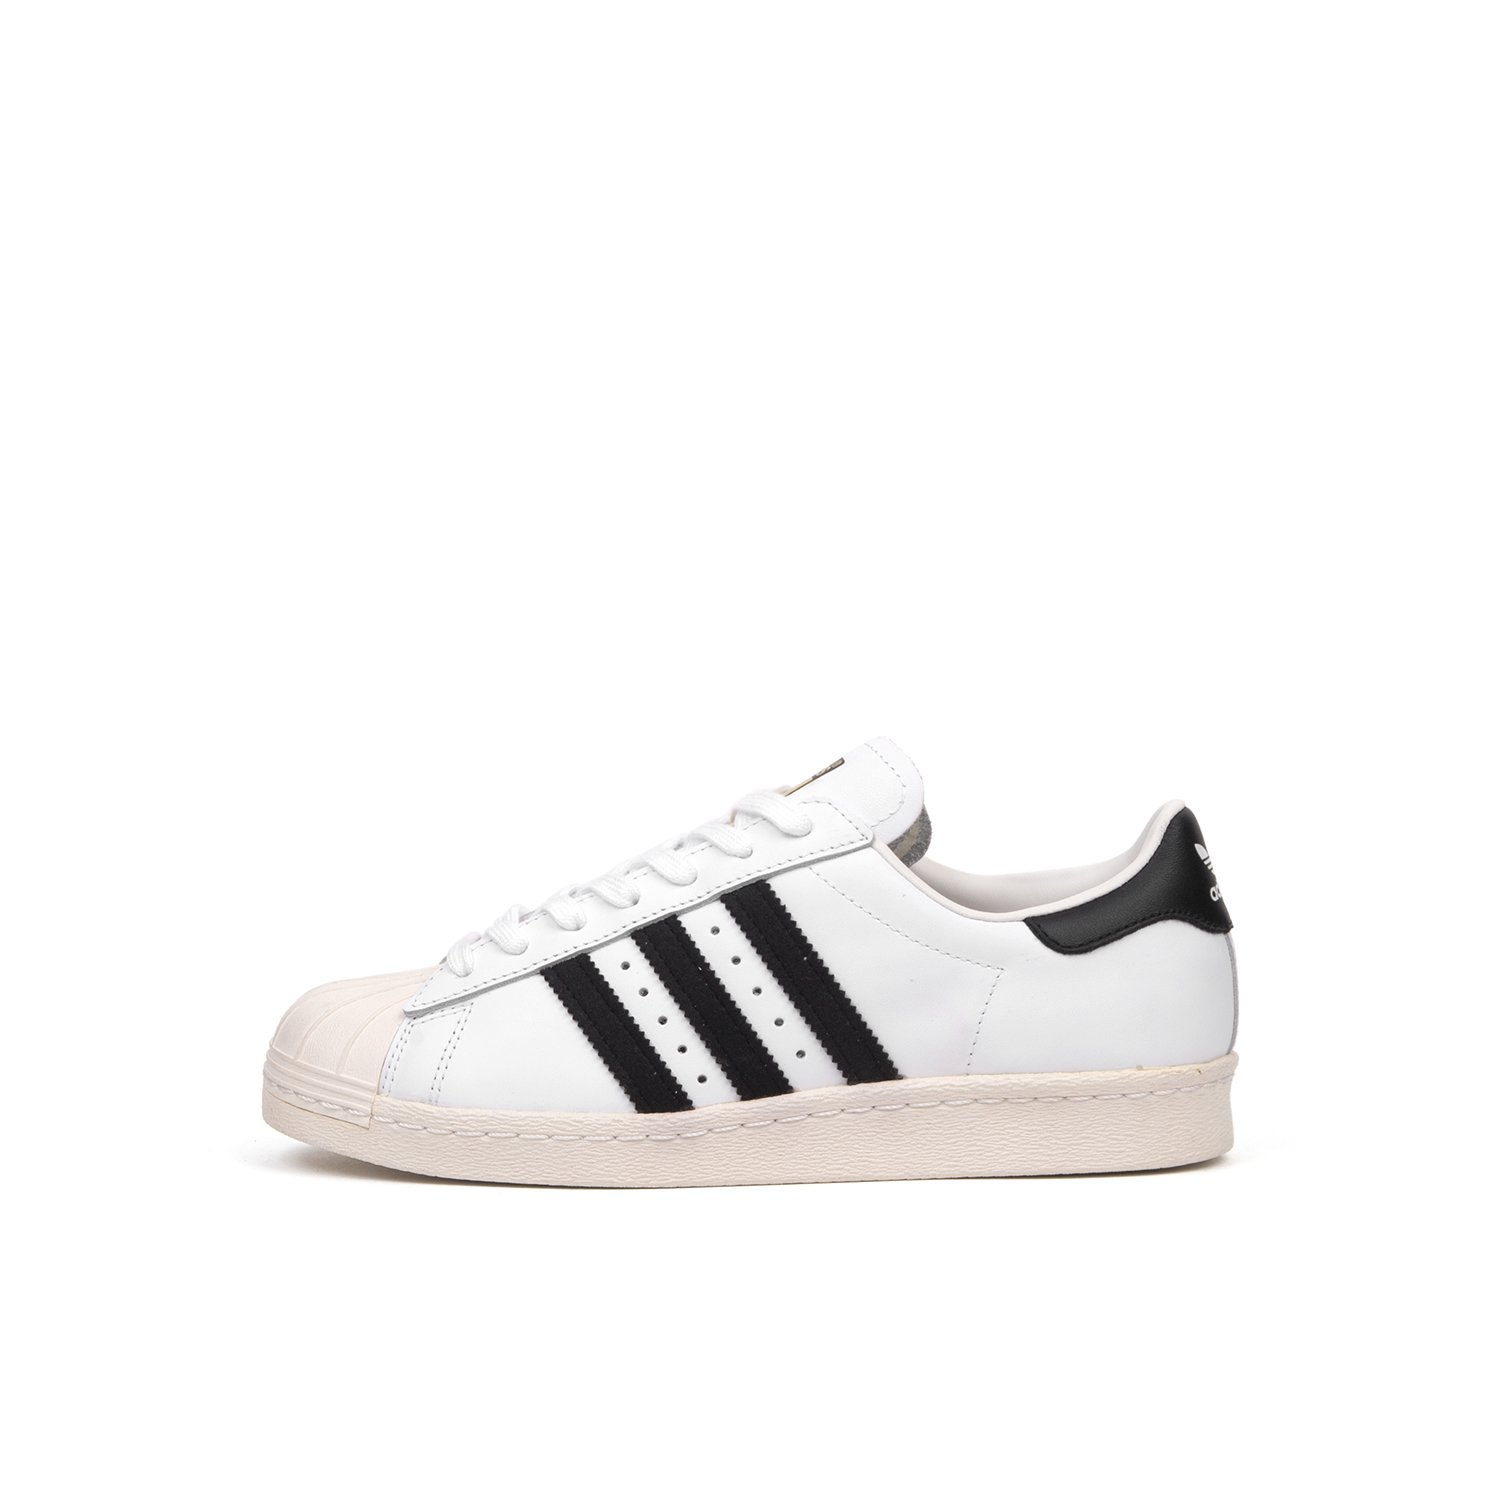 1500x1500 Adidas Originals Superstars 80s Whitelackchalk2 Concrete